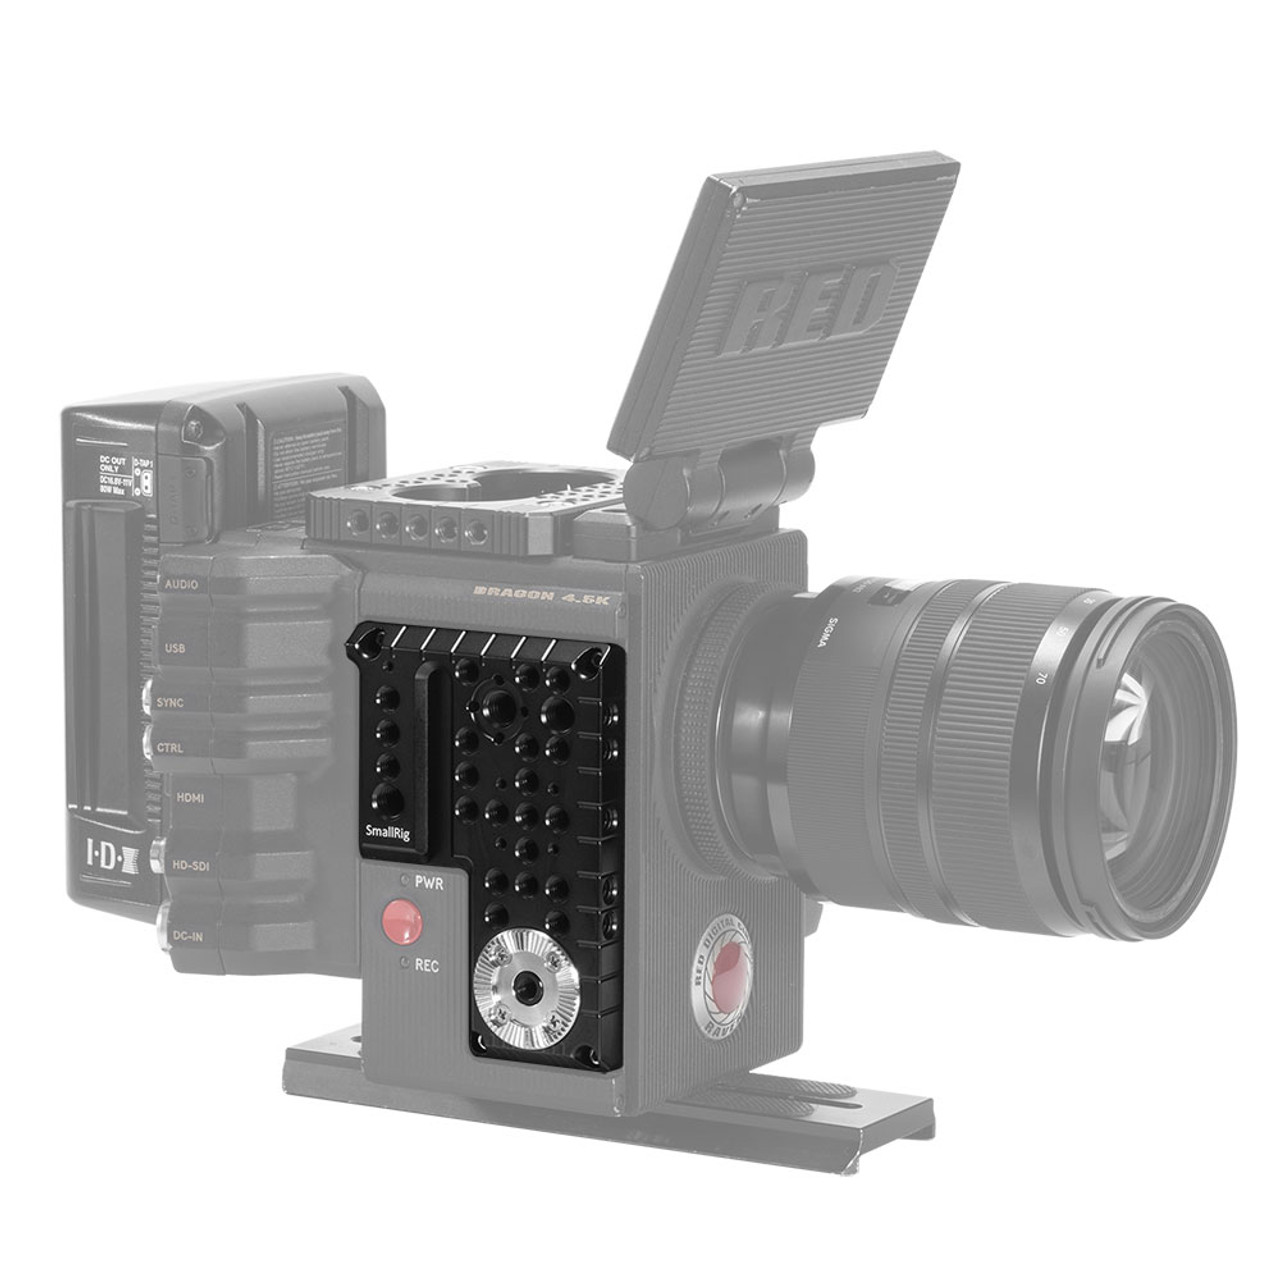 Red Digital Cinema Scarlet X Camcorder External Microphone Vidpro XM-AD5 Mini Pre-Amp Smart Mixer with Dual Condenser Microphones for DSLR/'s Video Cameras and Phones with SDC-26 Case